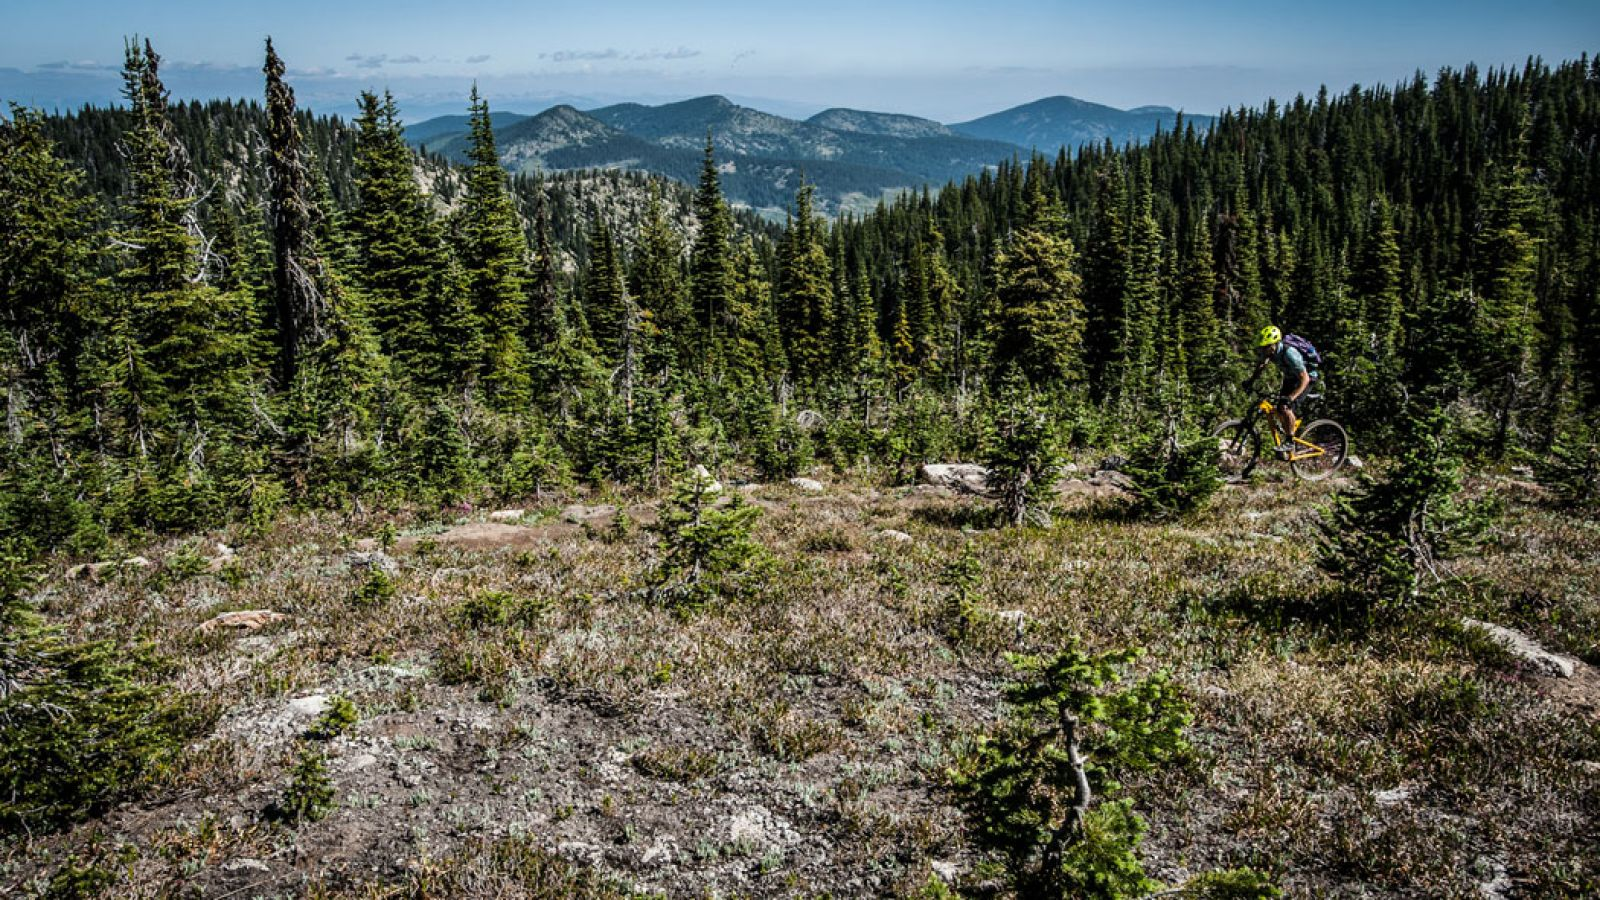 The Rossland area is home to some of North America's top trails.